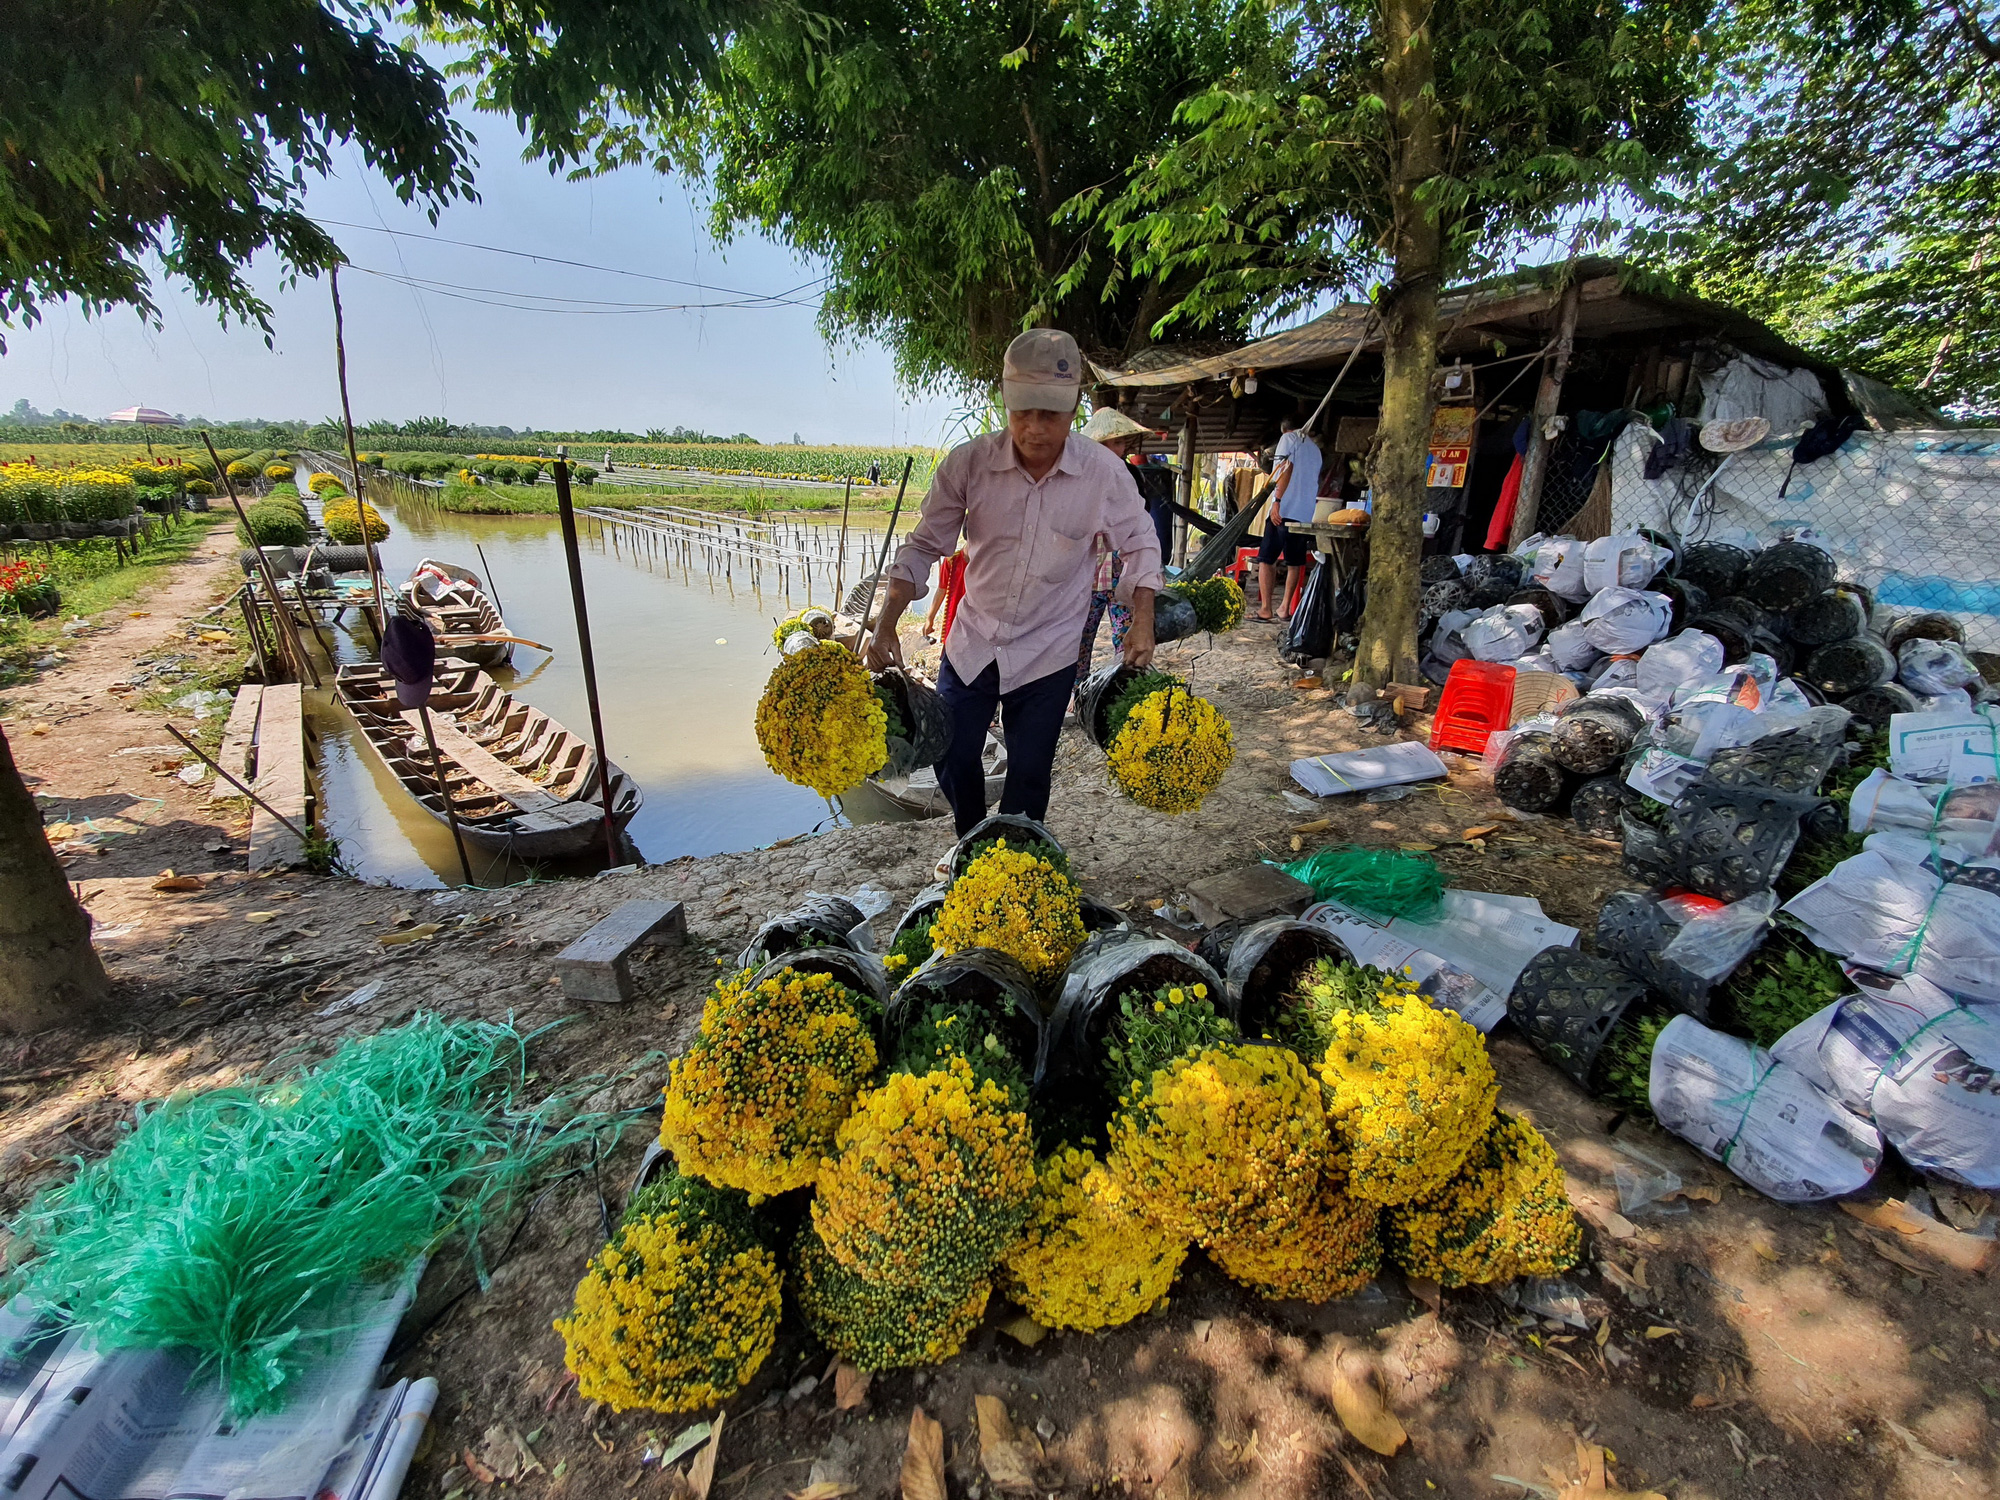 Pots of flowers are ready to be shipped to buyers. Photo: Chi Quoc / Tuoi Tre